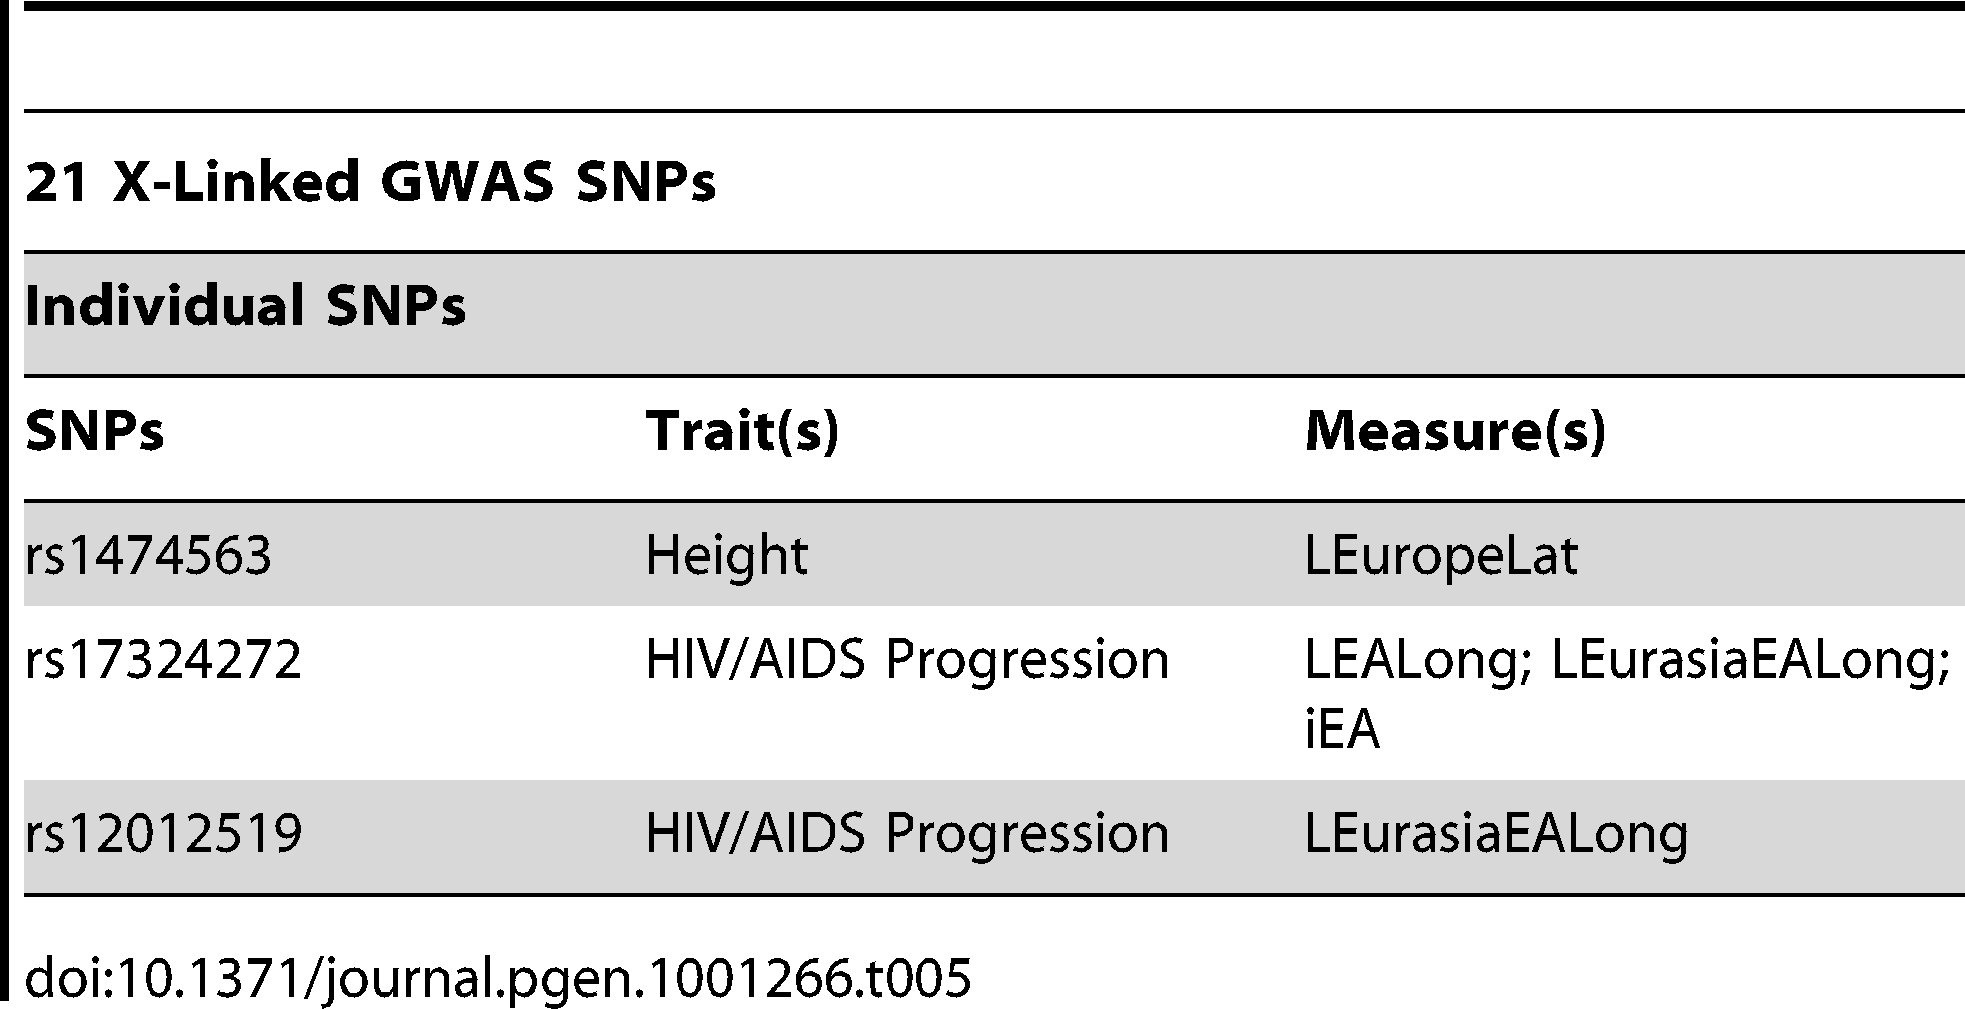 Individual SNPs that were significant for at least one delta, F<sub>st</sub>, LLC, or iHS measure in the X chromosome analysis.